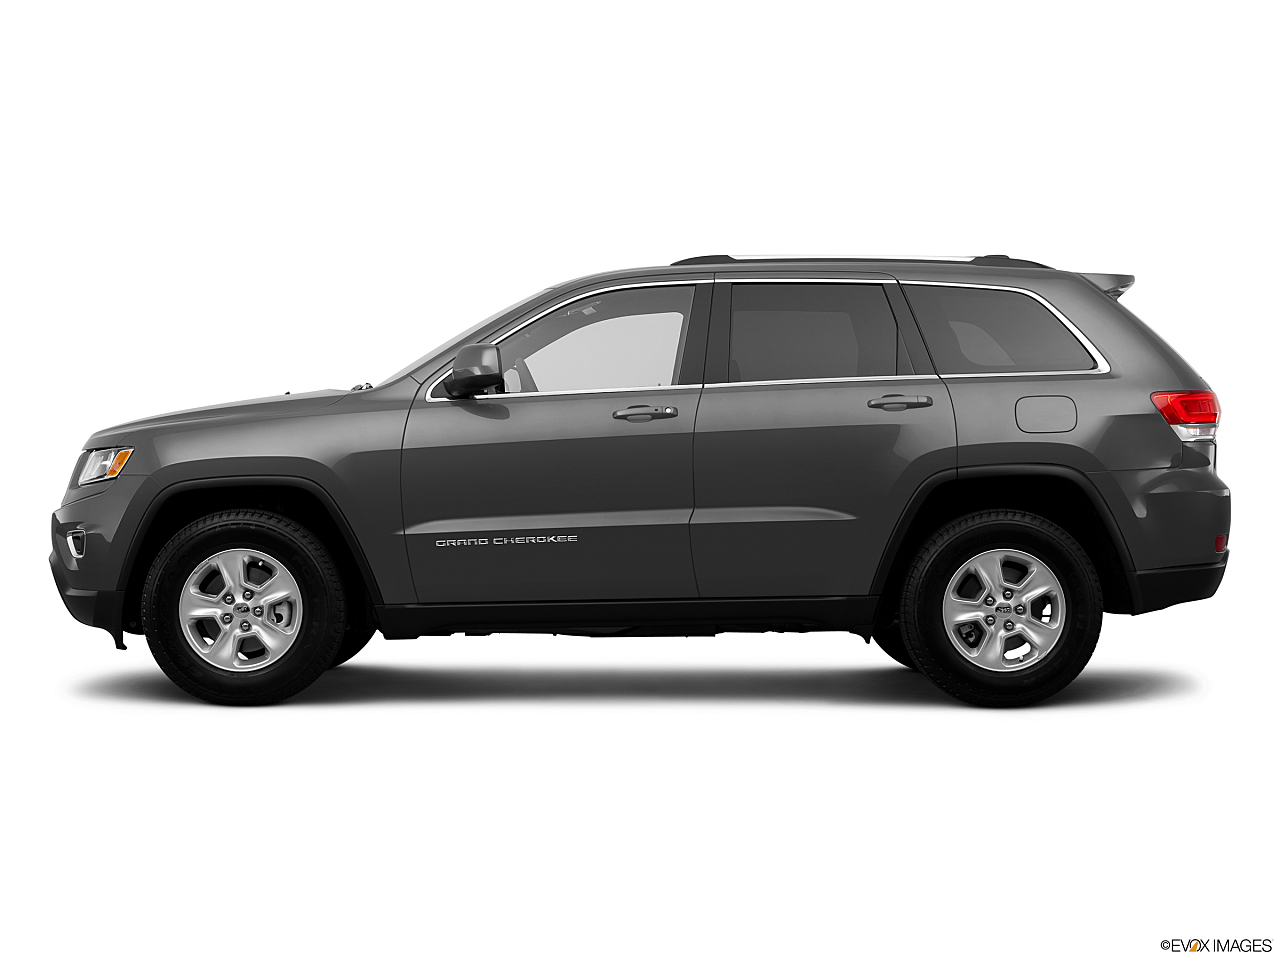 2014 Jeep Grand Cherokee at Novak Motors NJ of Lebanon, NJ. The dealership has not provided a description for the image.